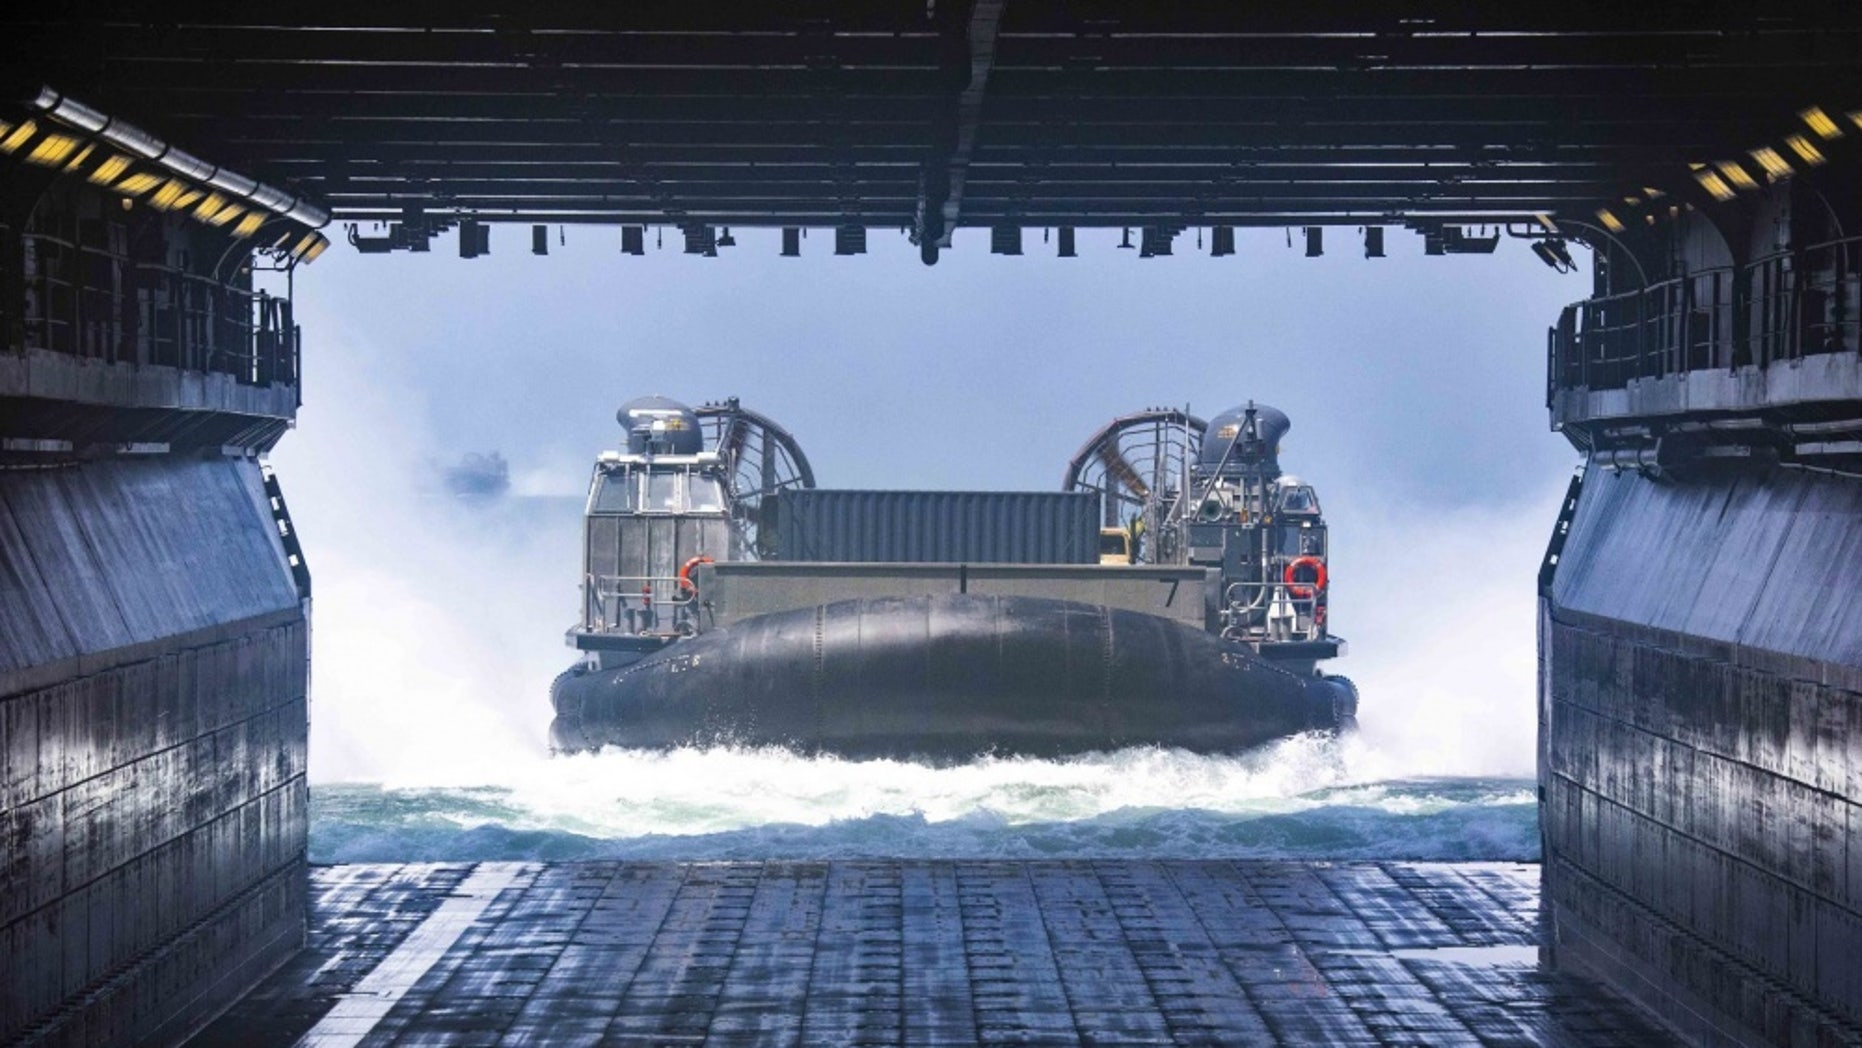 File photo - A Landing Craft Air Cushion approaches the well deck of the amphibious assault ship USS Kearsarge (LHD 3) (U.S. Navy photo by Mass Communication Specialist 3rd Class Kaitlyn E. Eads/Released)